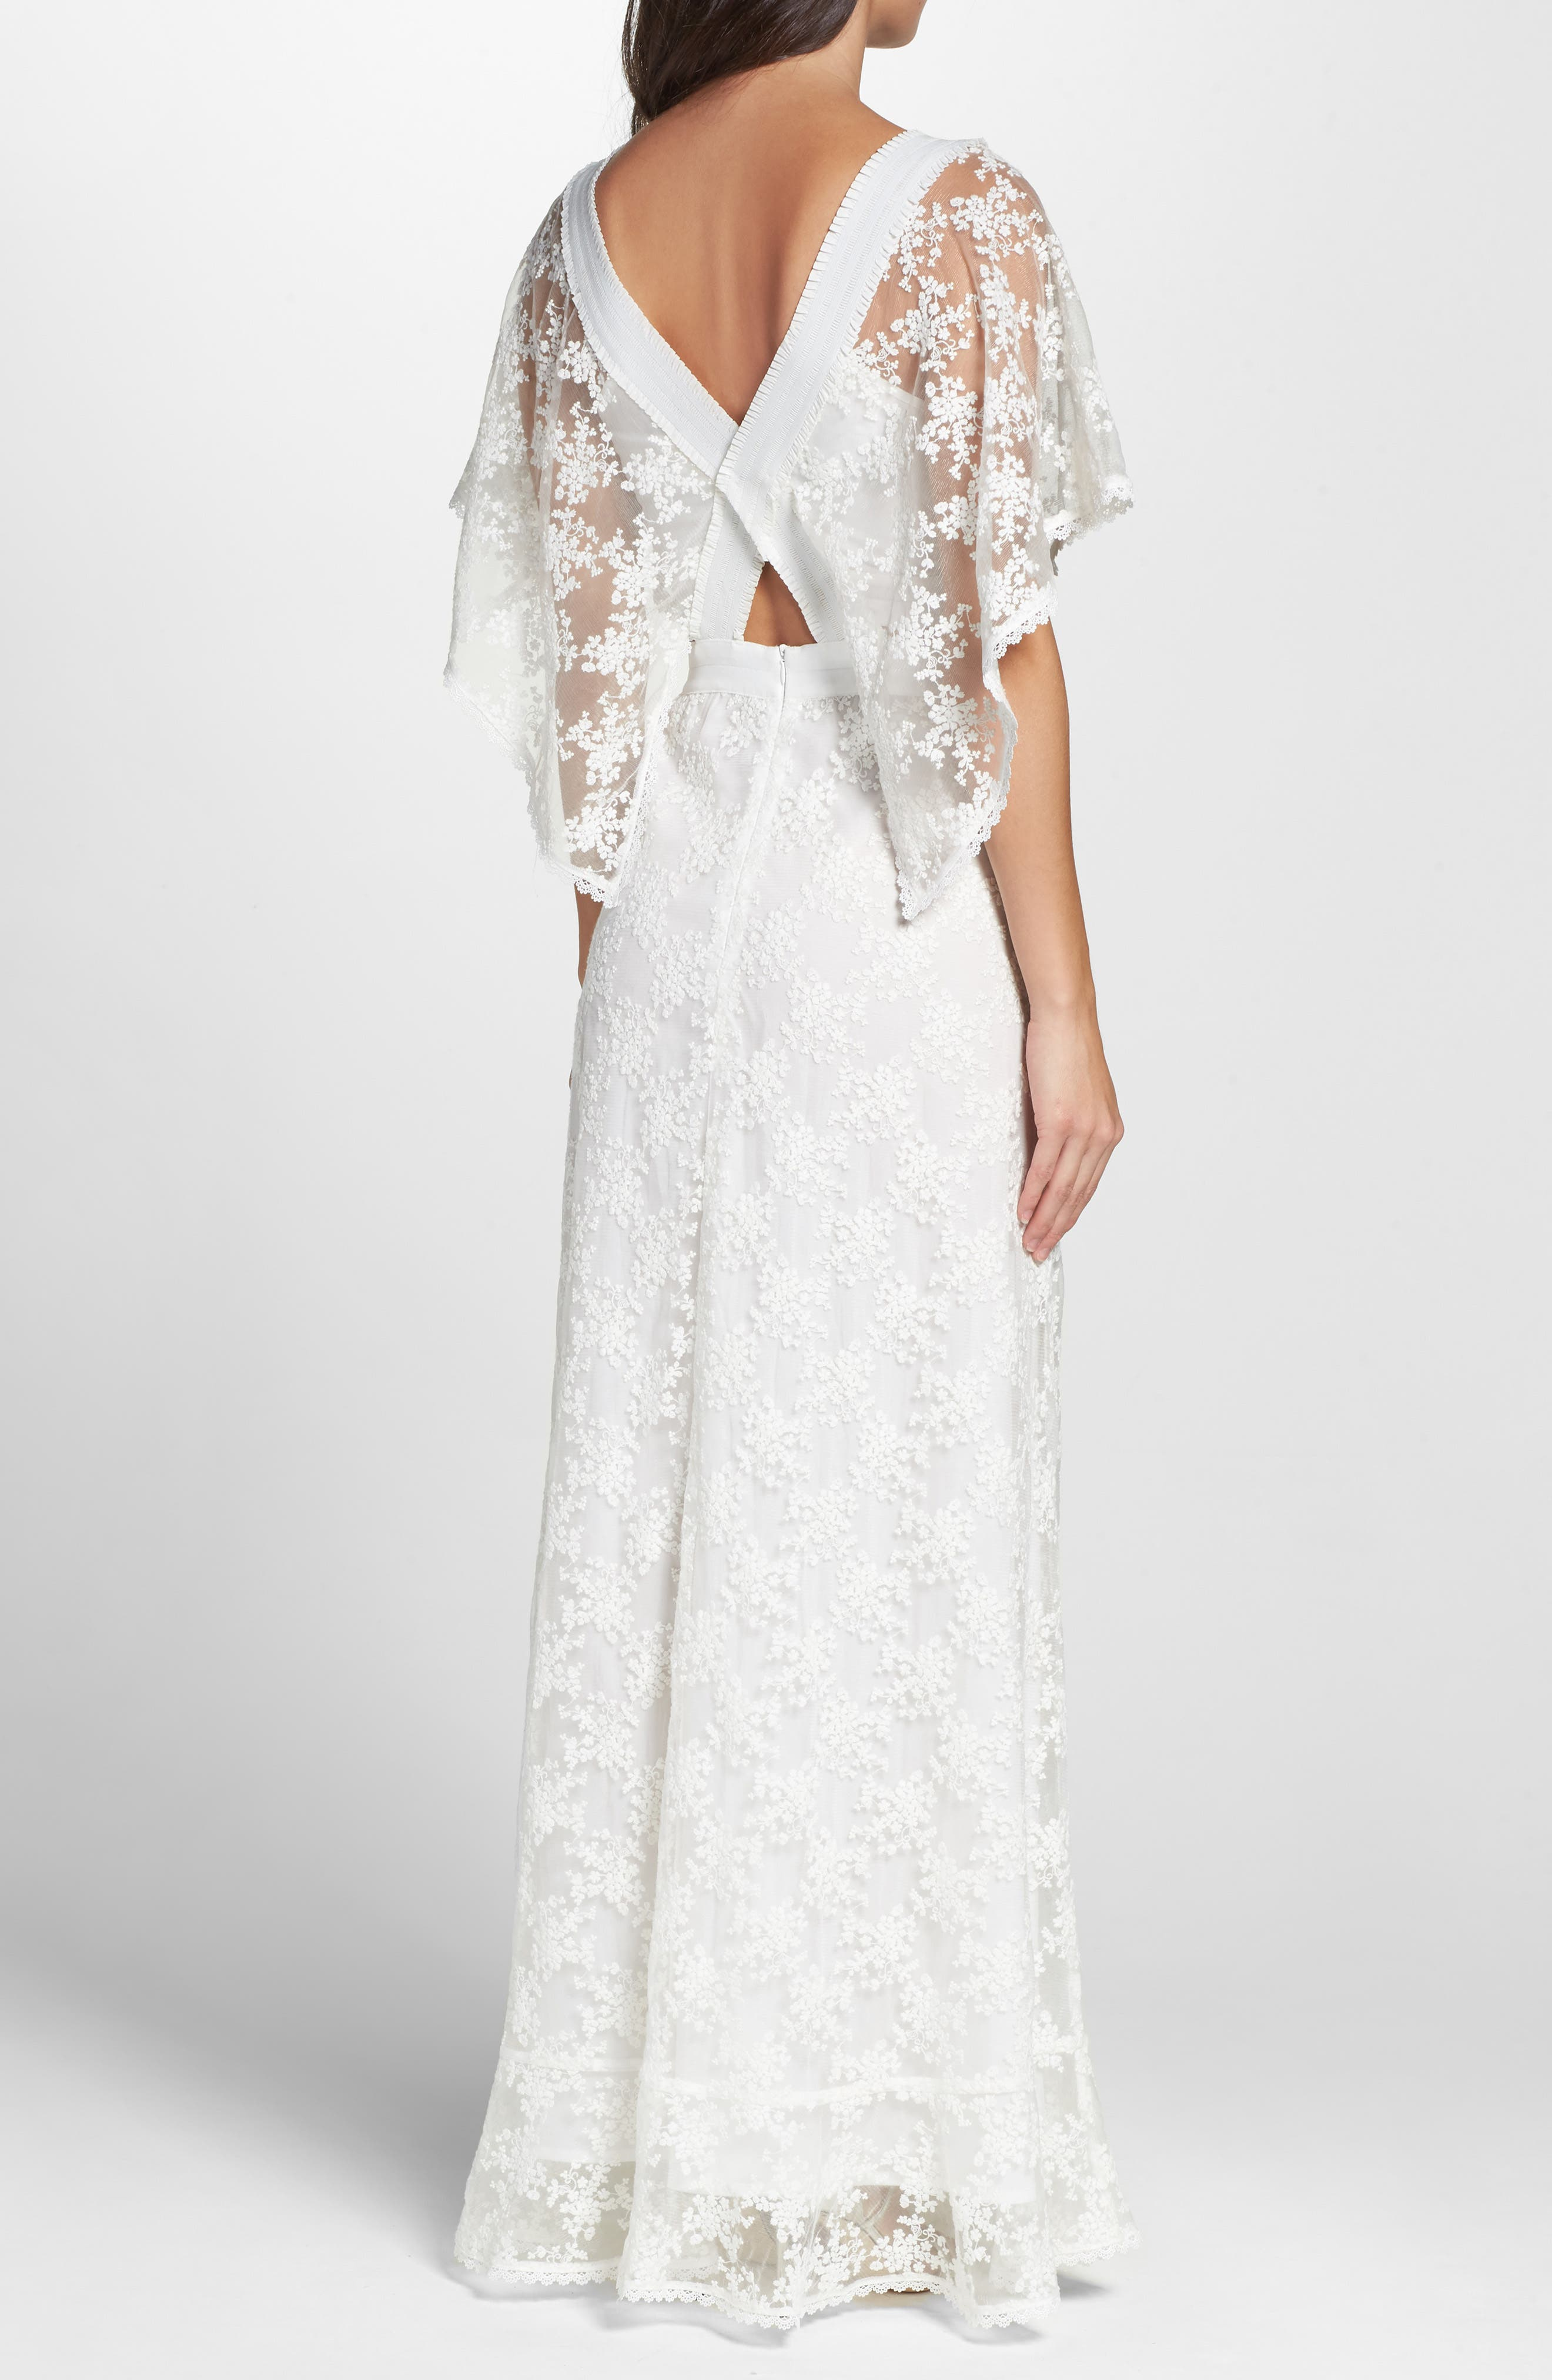 August Handkerchief Sleeve Embroidered Long Dress,                             Alternate thumbnail 2, color,                             Ivory